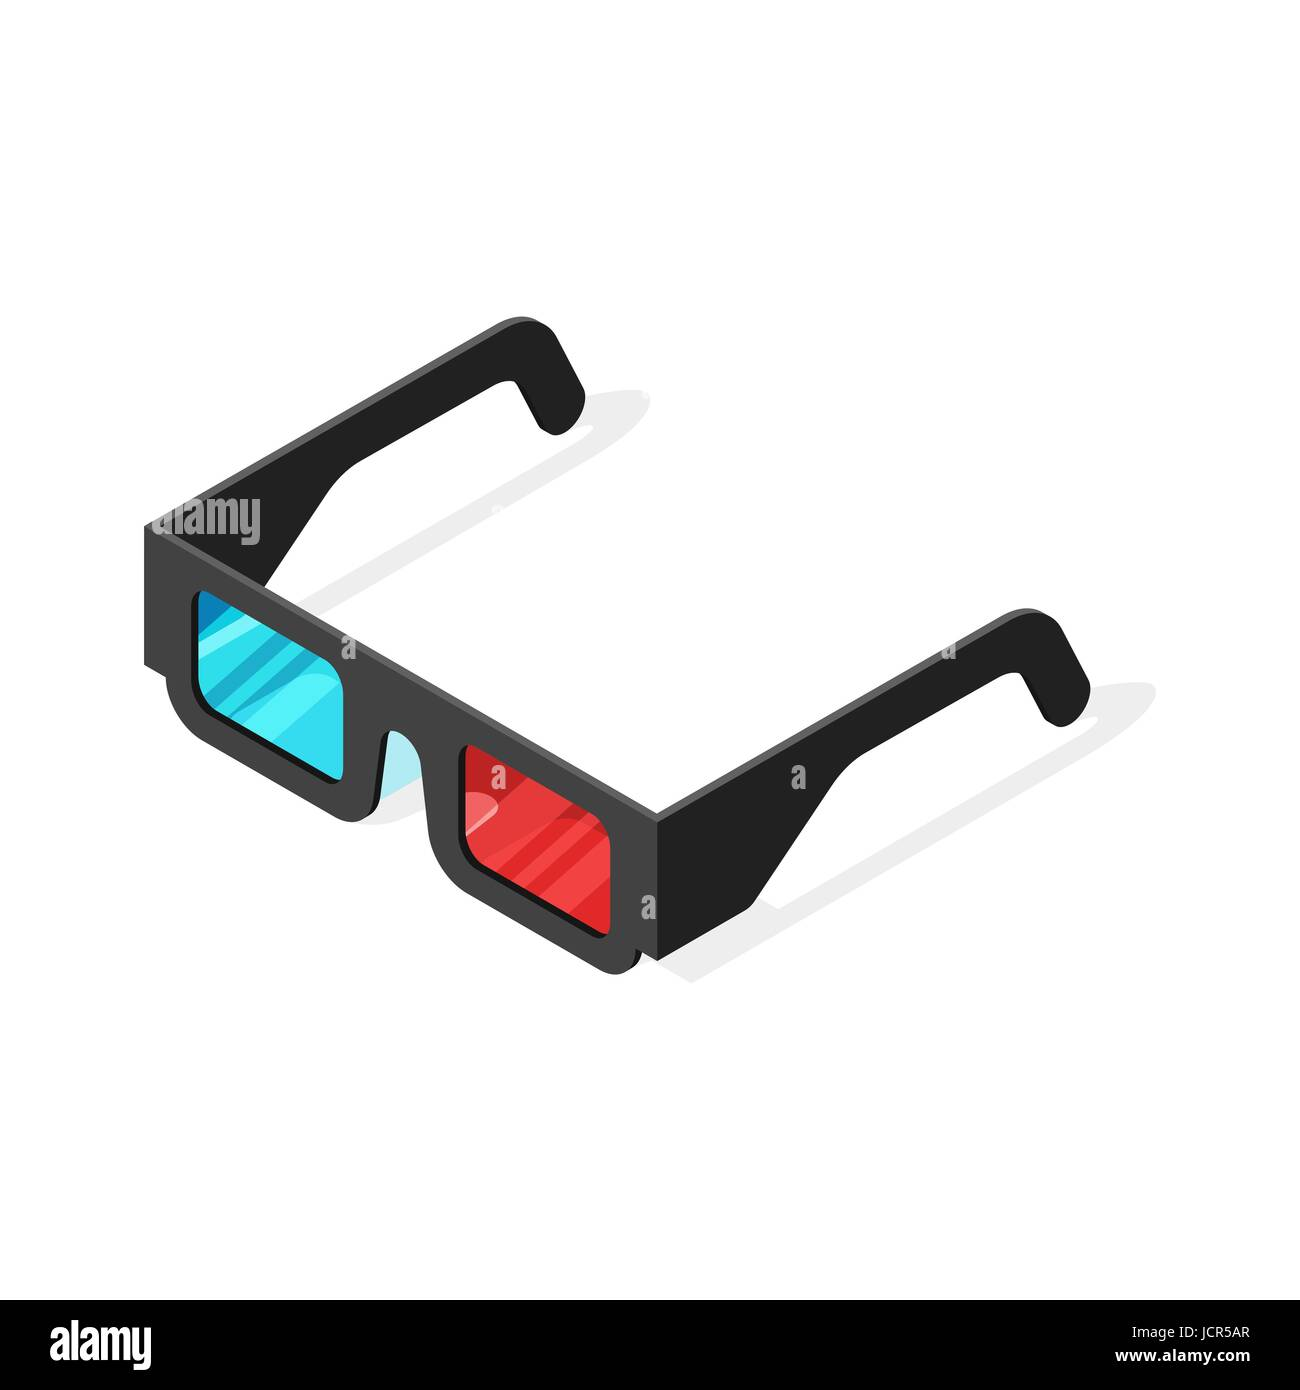 aebb8895c01 Isometric vector illustration of 3d glasses. Isolated on white background.  - Stock Vector